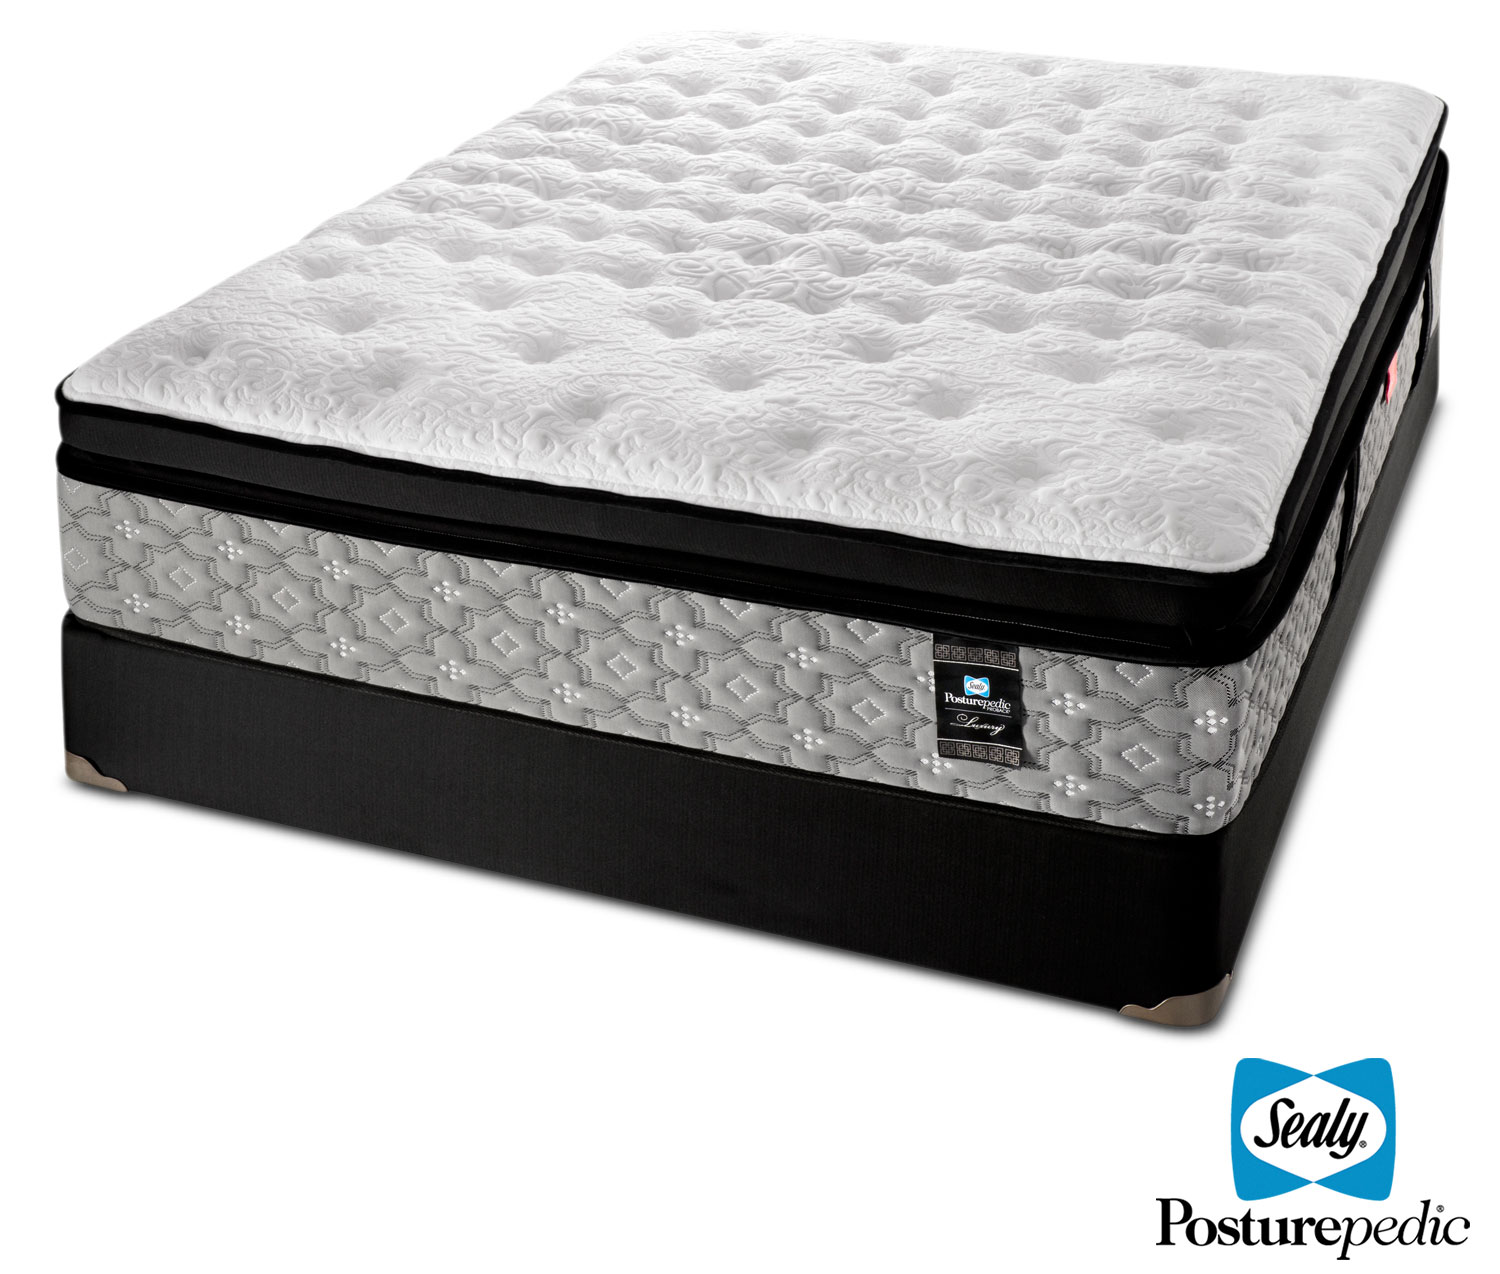 Sealy Epic Plush Queen Mattress and Boxspring Set